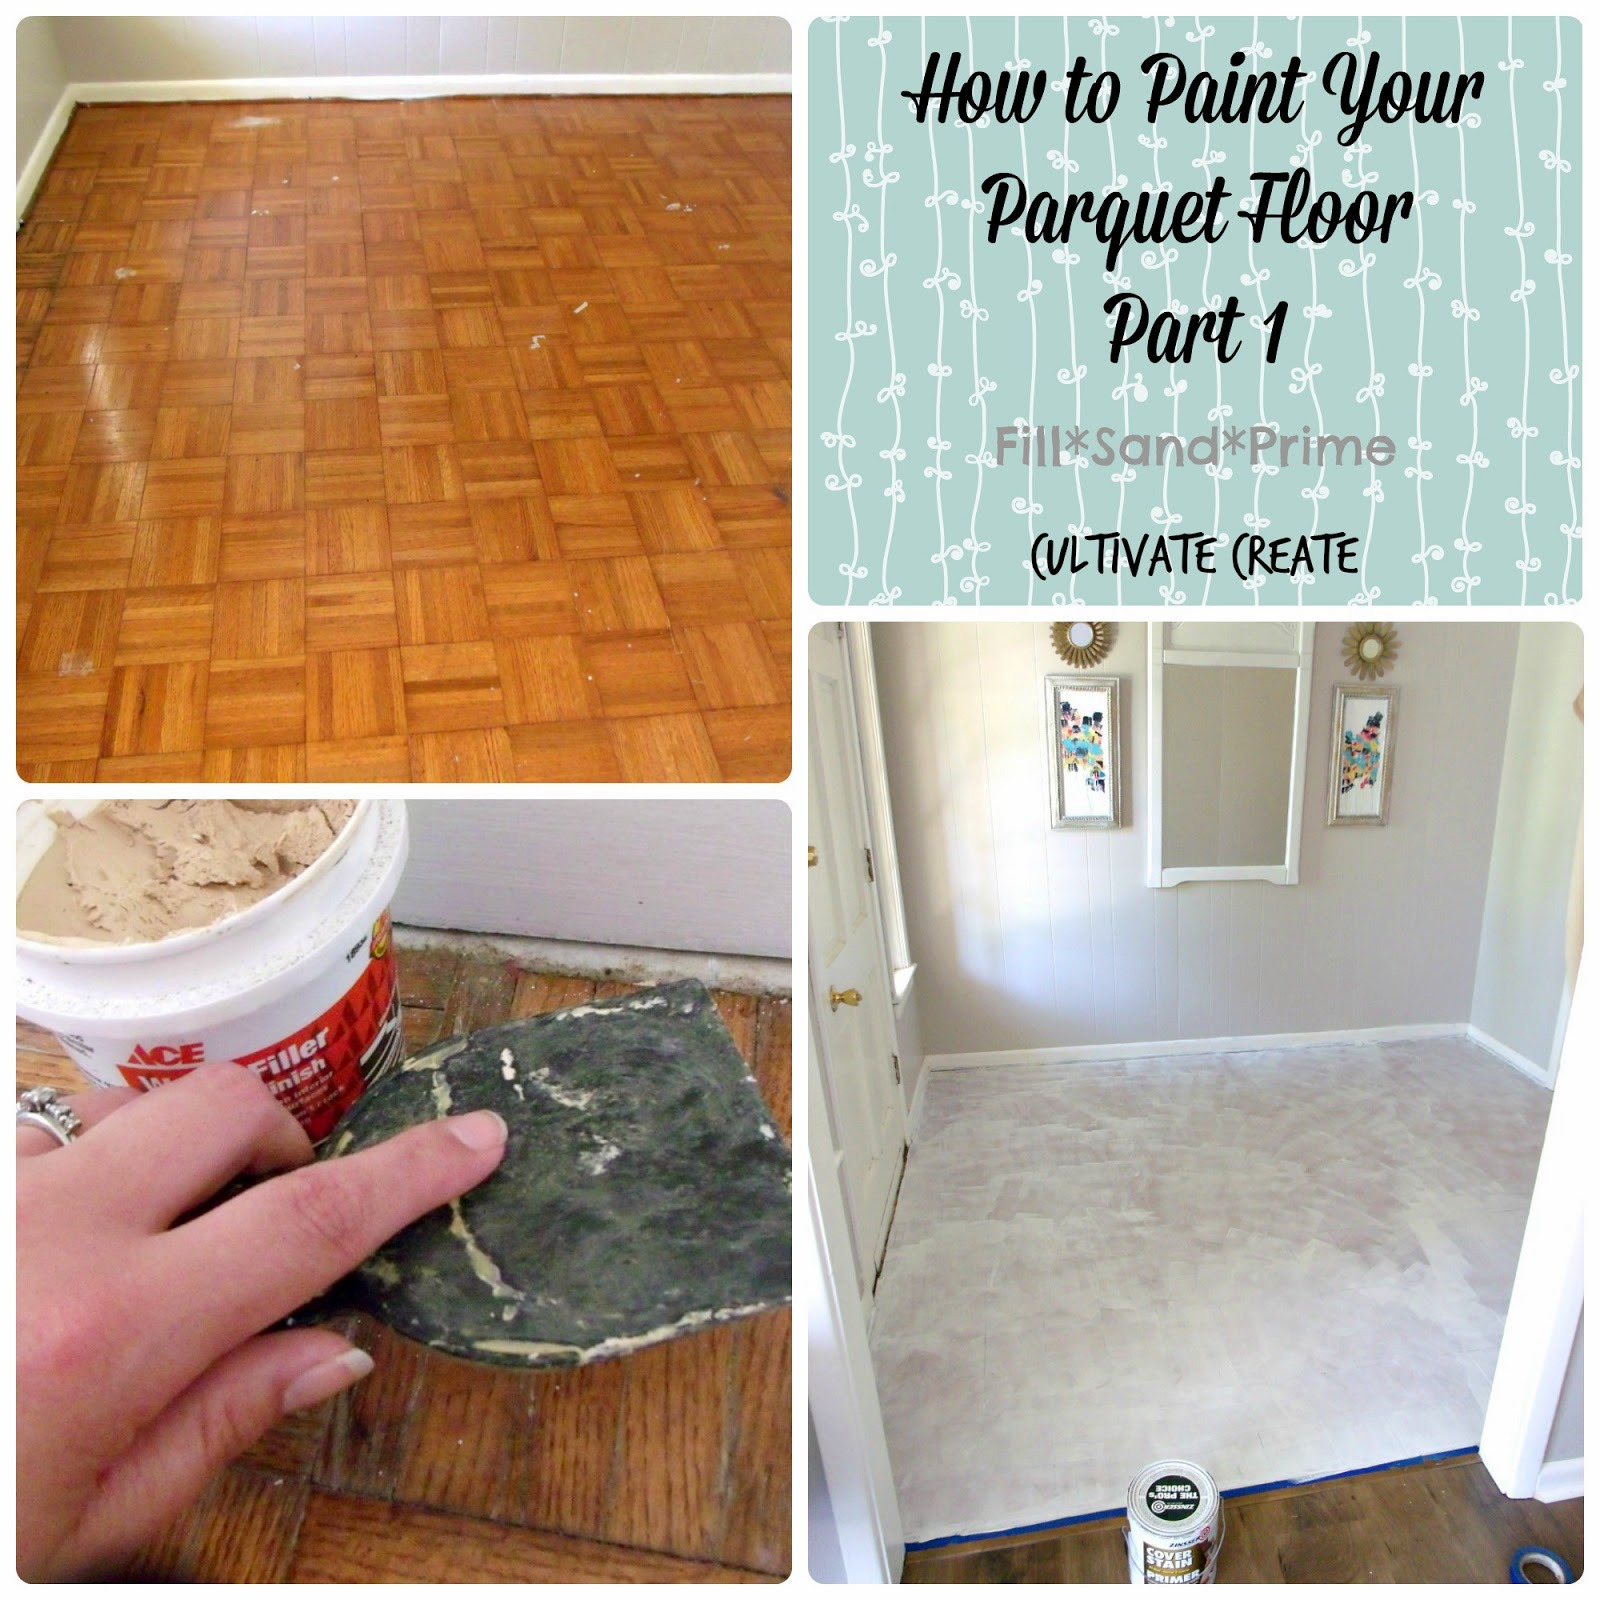 Cultivate Create Painted Parquet Floor - When was parquet flooring popular